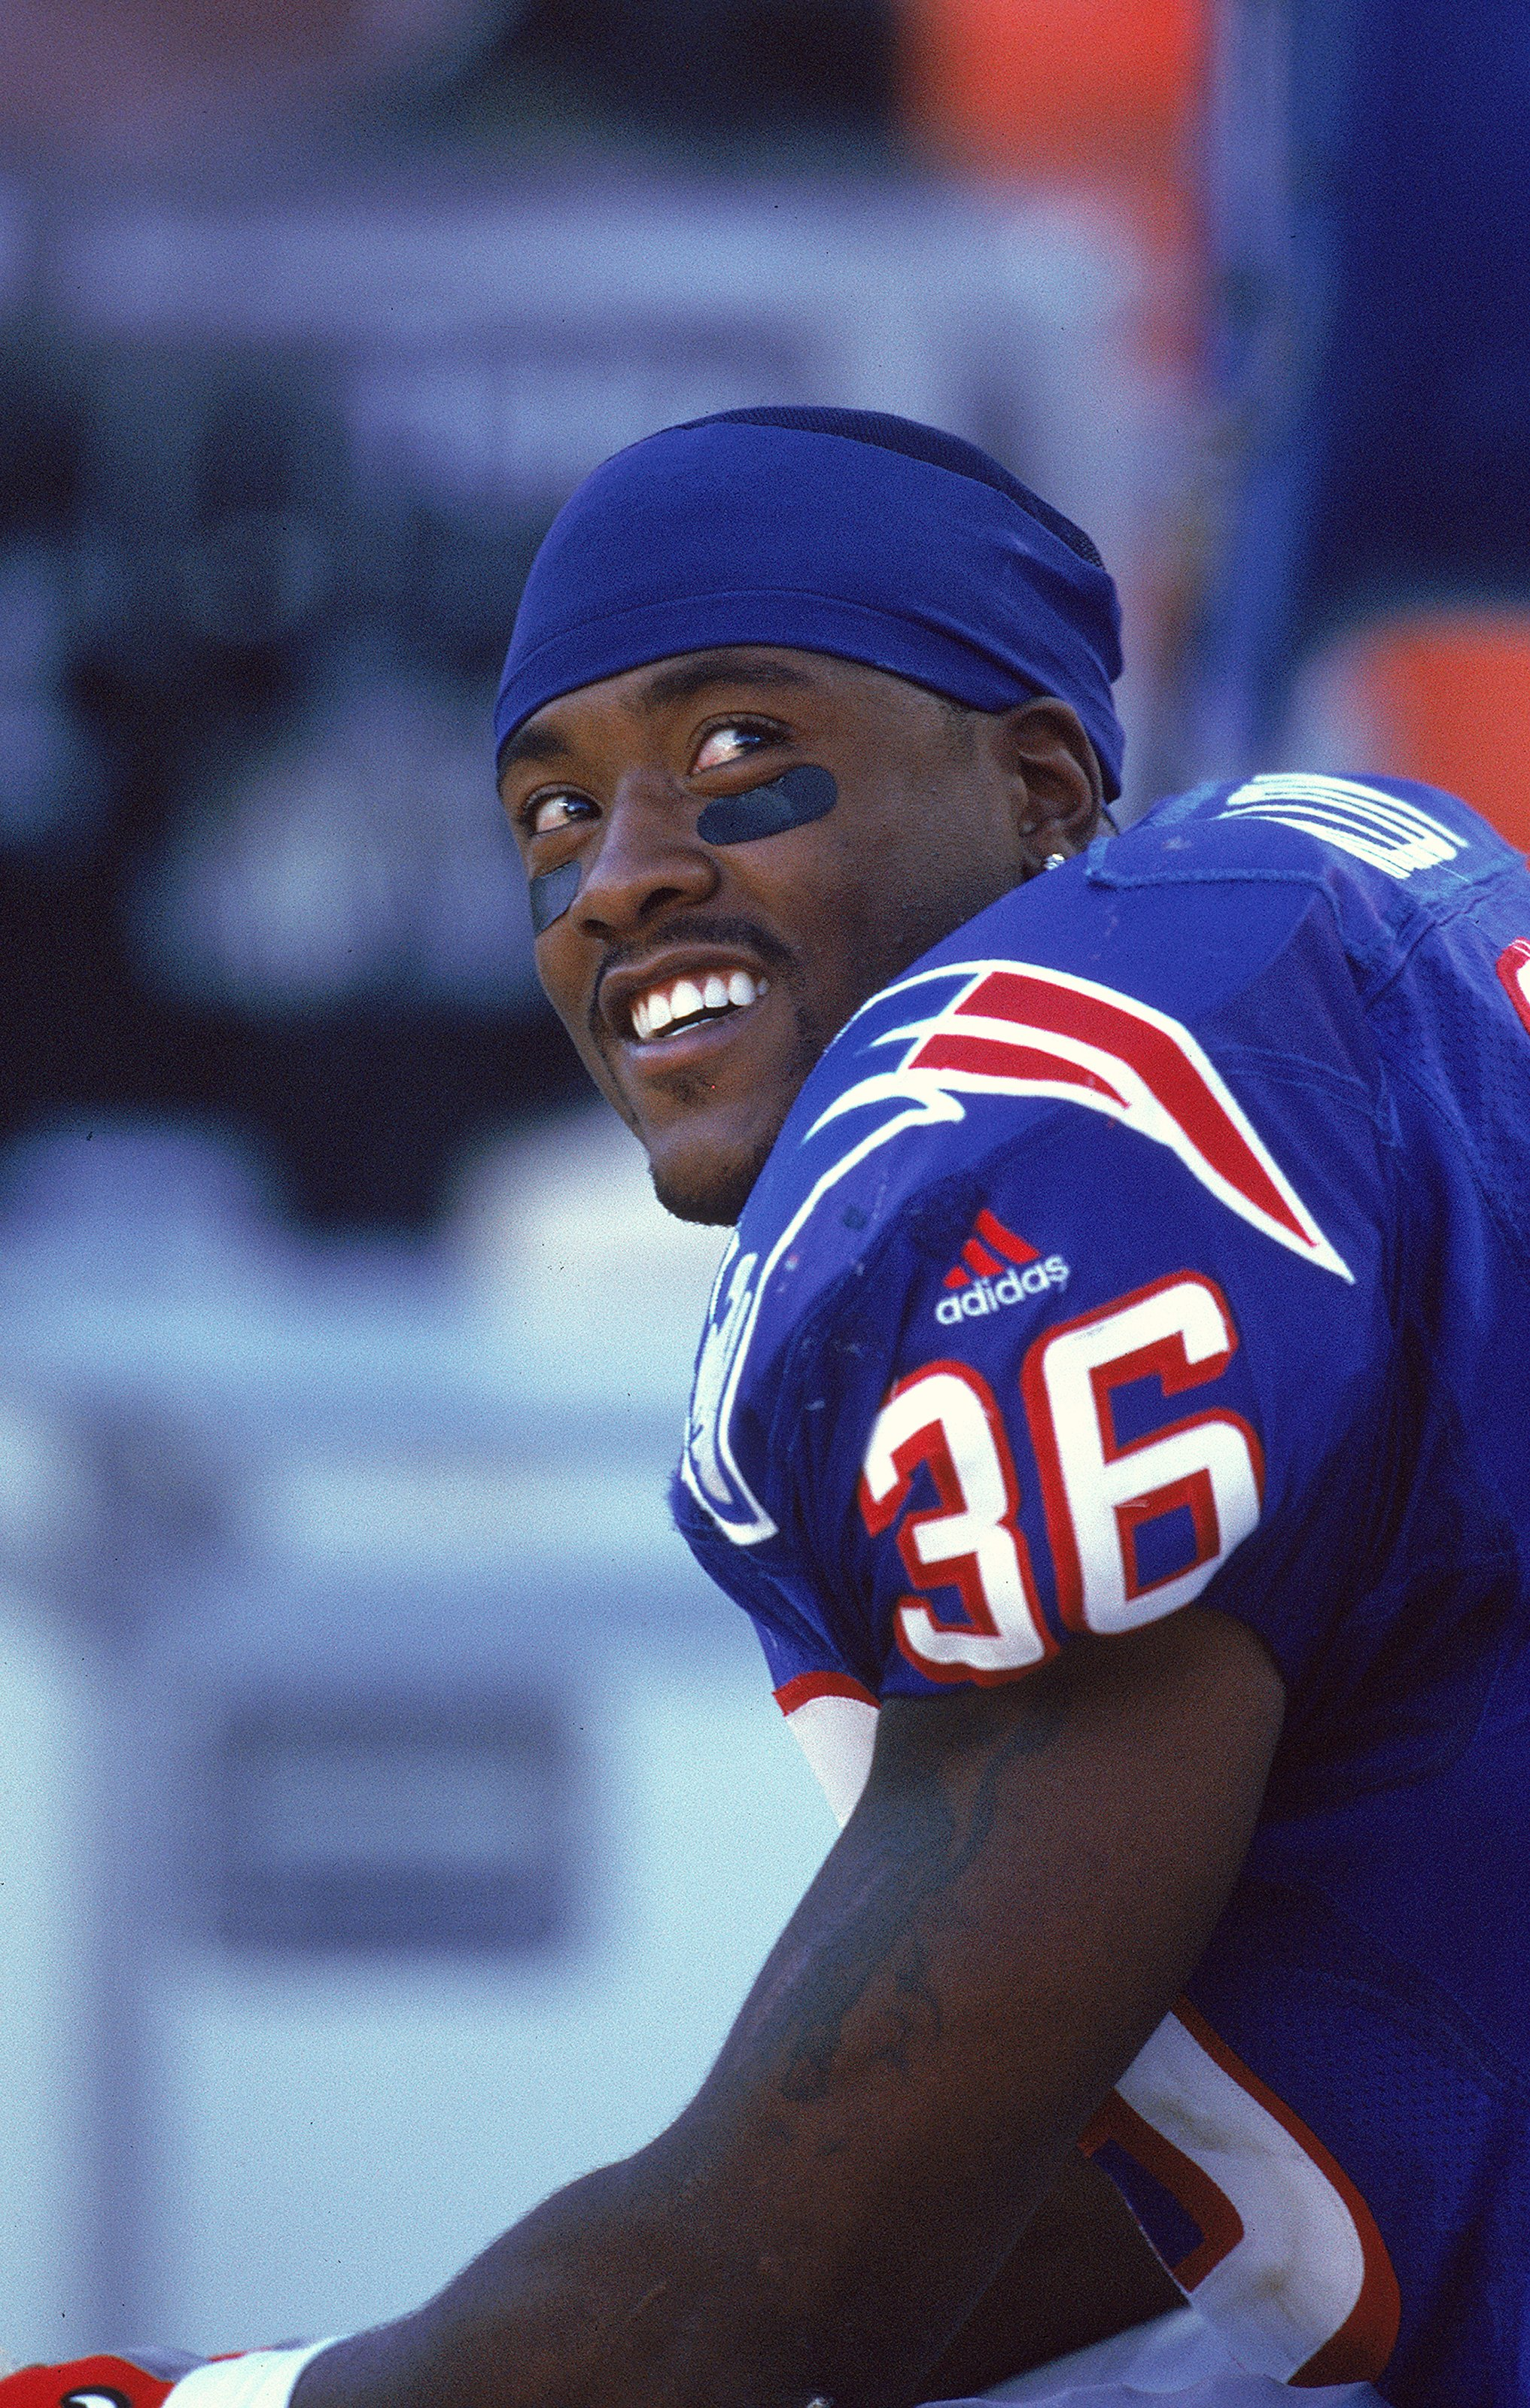 31 Oct 1999: Lawyer Milloy #36 of the New England Patriots smiles as he sits on the bench during the game against the Arizona Cardinals at the Sun Devil Stadium in Tempe, Arizona. The Patriots defeated the Cardinals 27-3. Mandatory Credit: Tom Hauck  /All